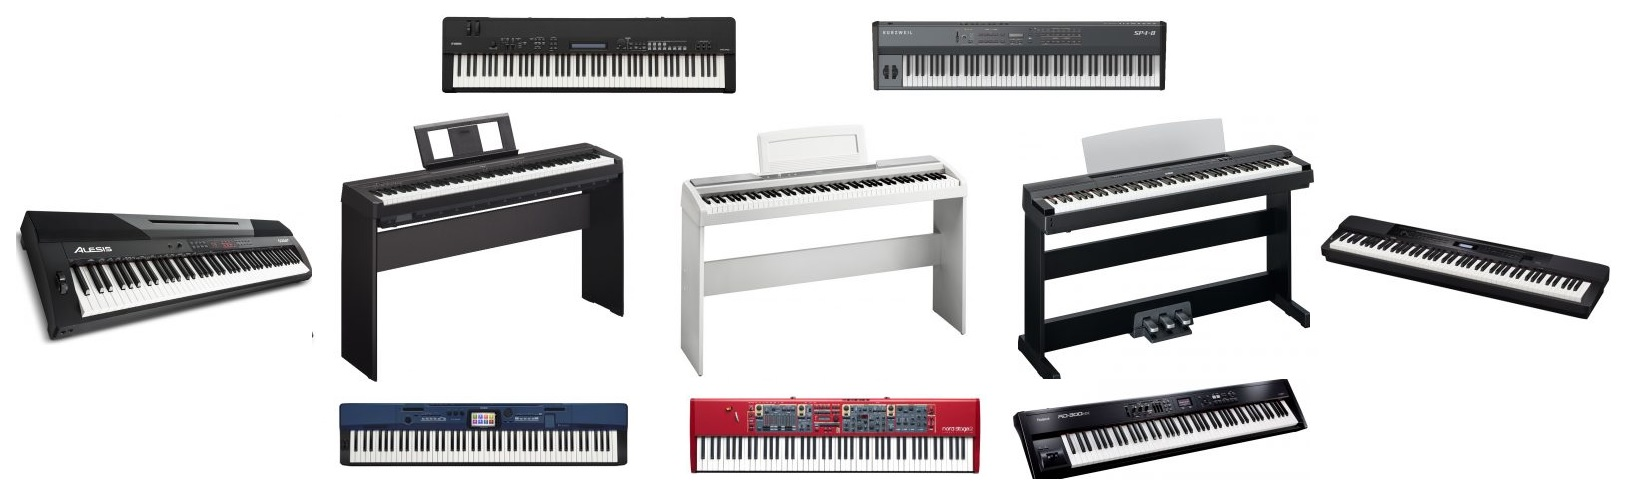 The Top 10 Best Stage Pianos in the World - The Wire Realm